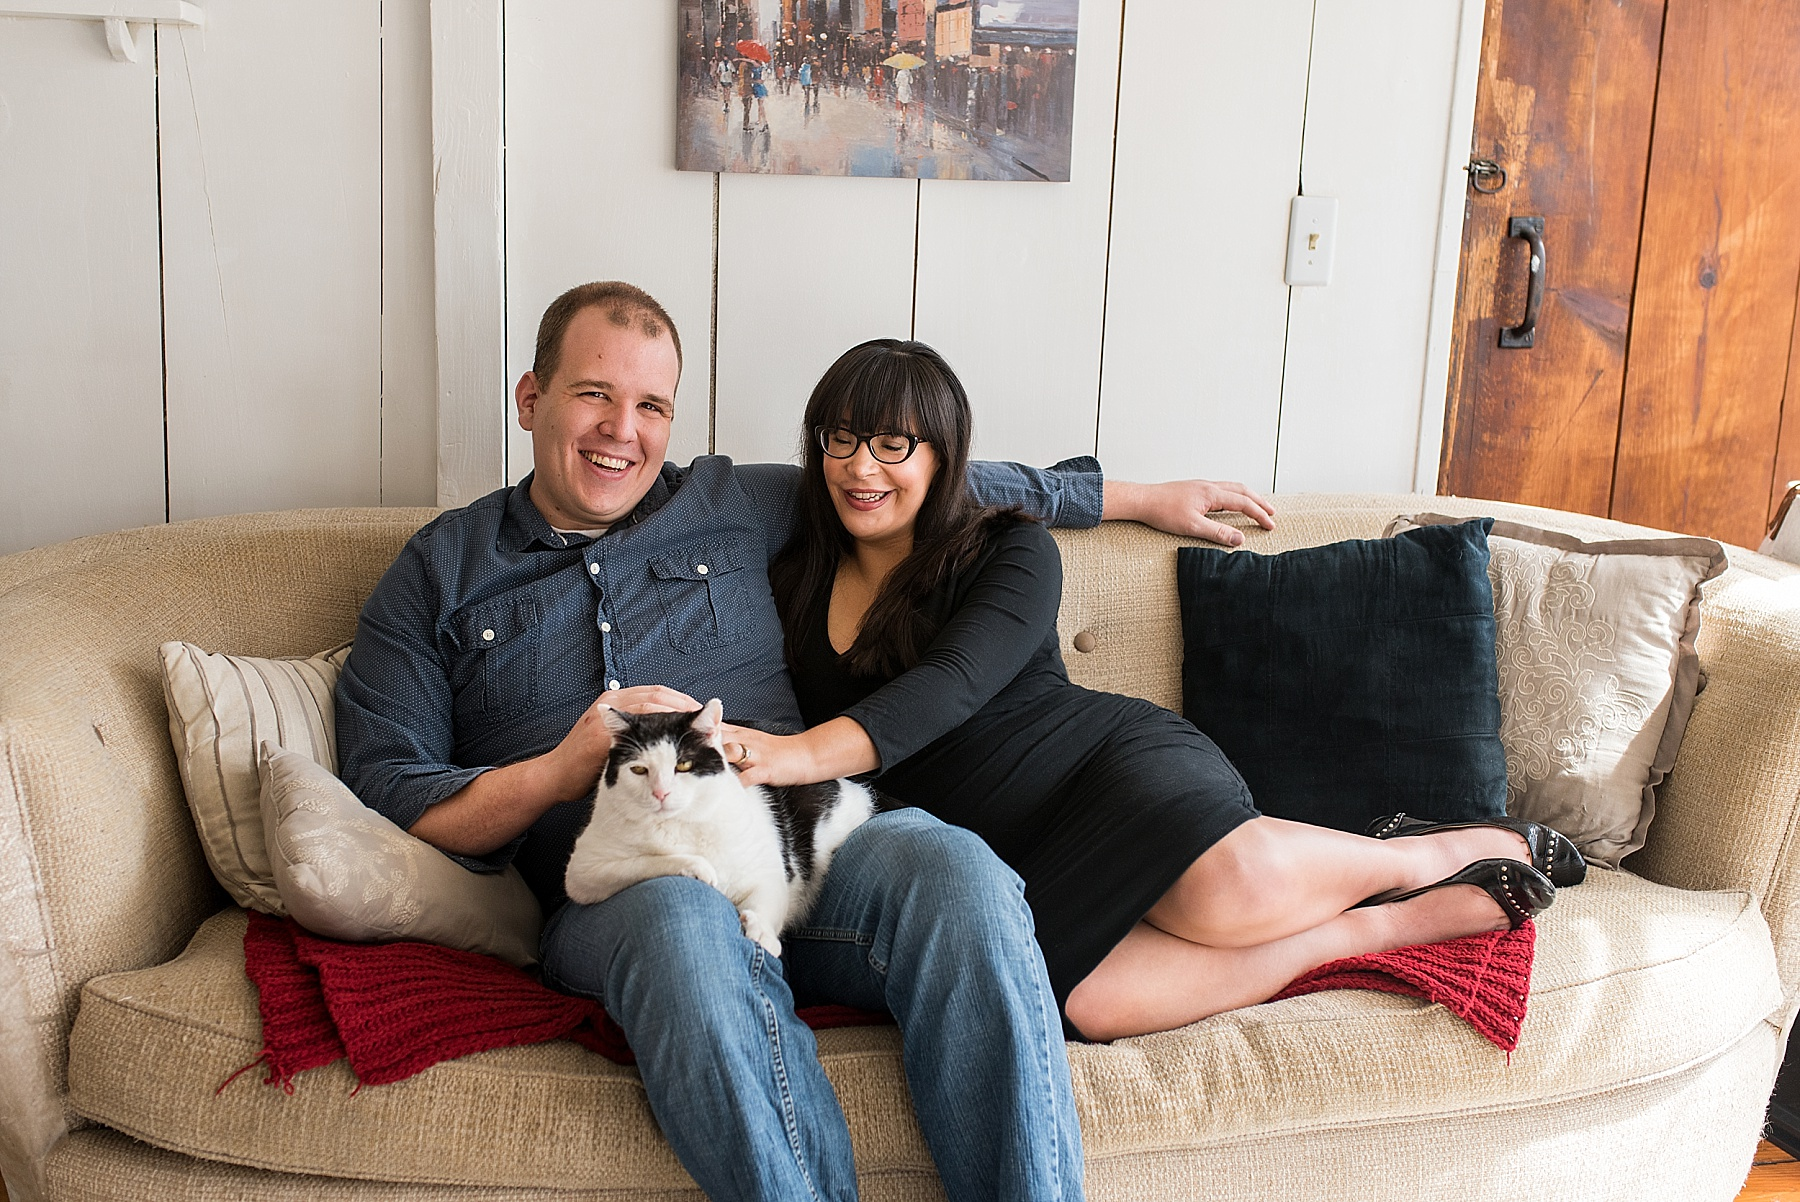 Husband and wife sitting on the couch with their cat during CT maternity photography